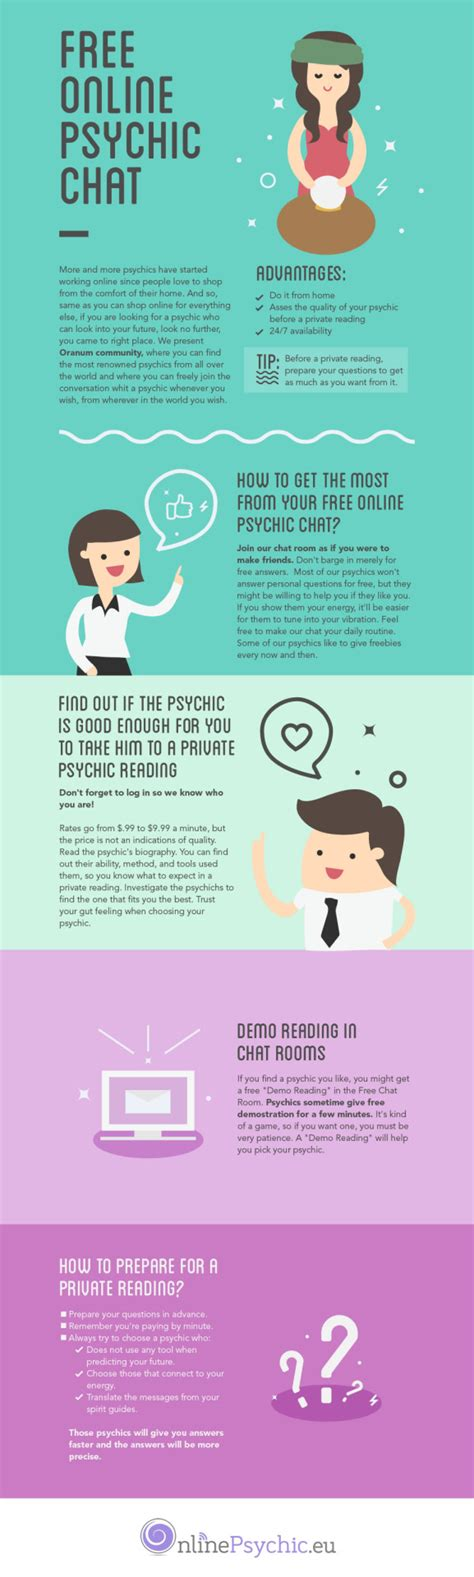 Free Online Psychic Chat [infographic]